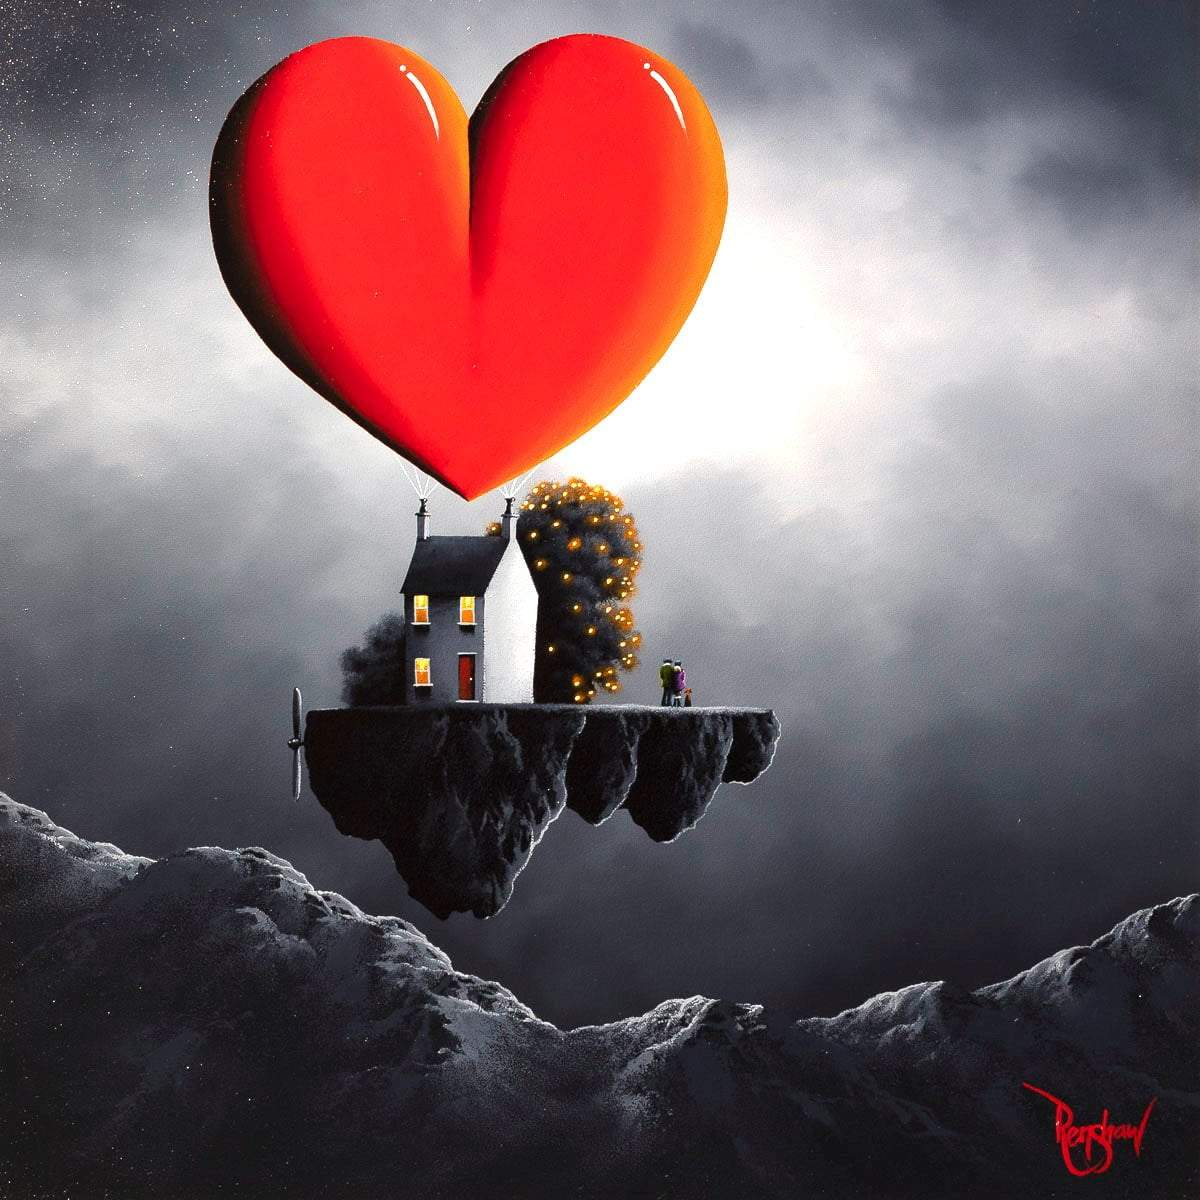 Our Love Is Sky High - Original David Renshaw Framed